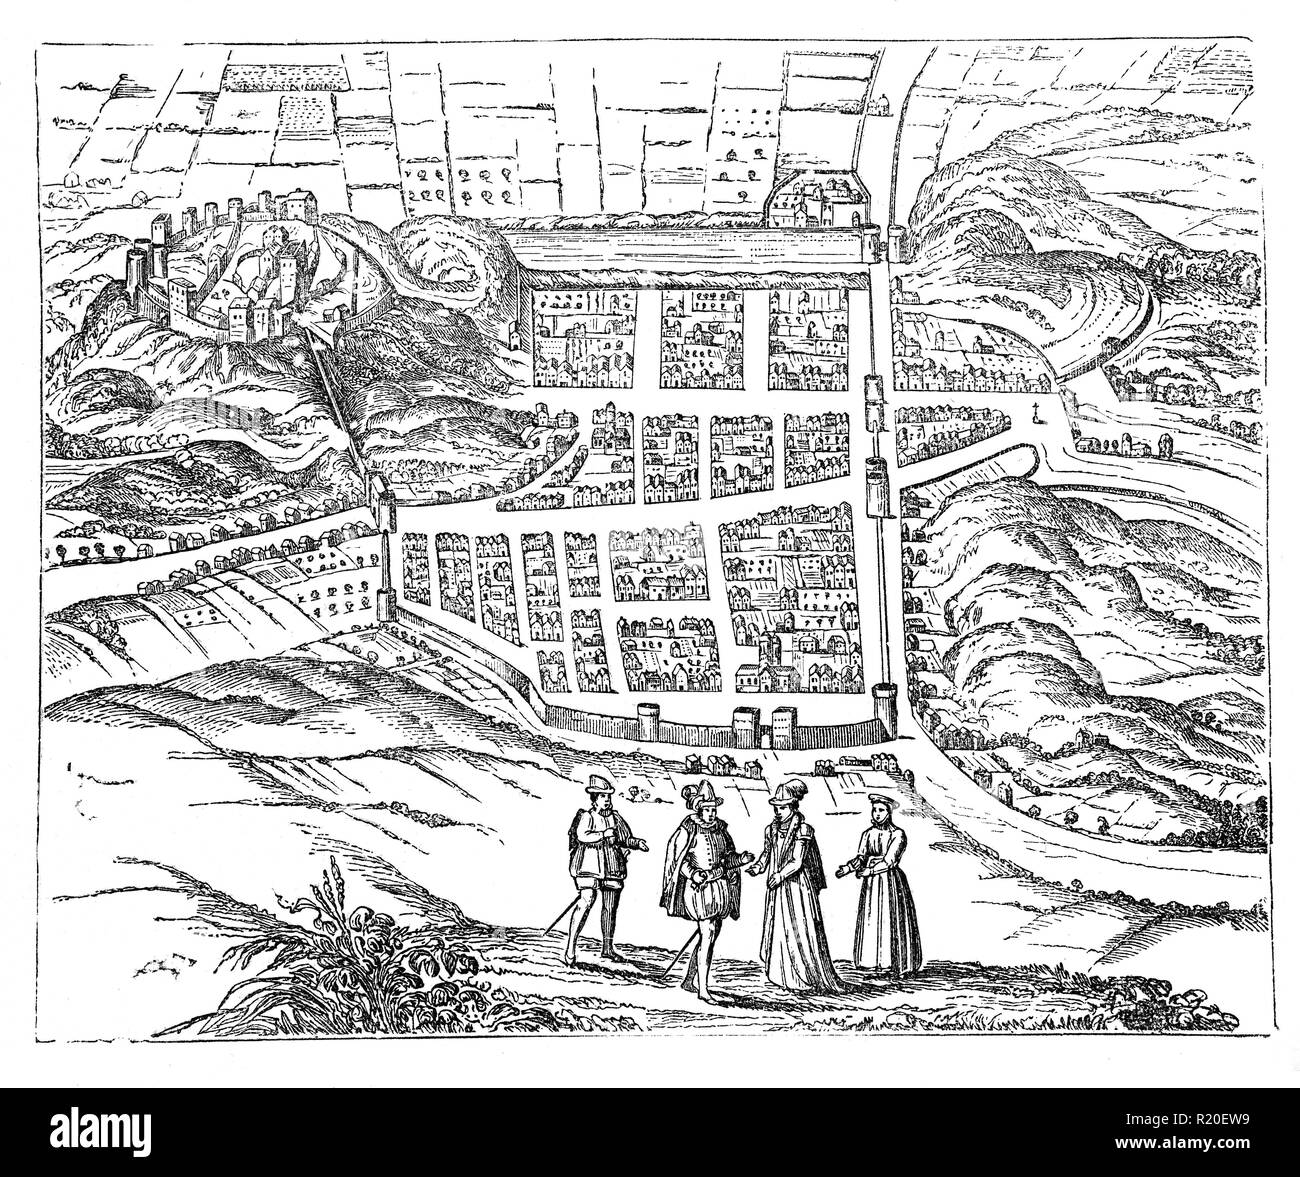 A map of Edinburgh in the 17th century when  grew in size and prosperity. This was despite outbreaks of plague in 1604 and 1645. Meanwhile in 1621 thatched roofs were banned in Edinburgh as they were a fire hazard. - Stock Image